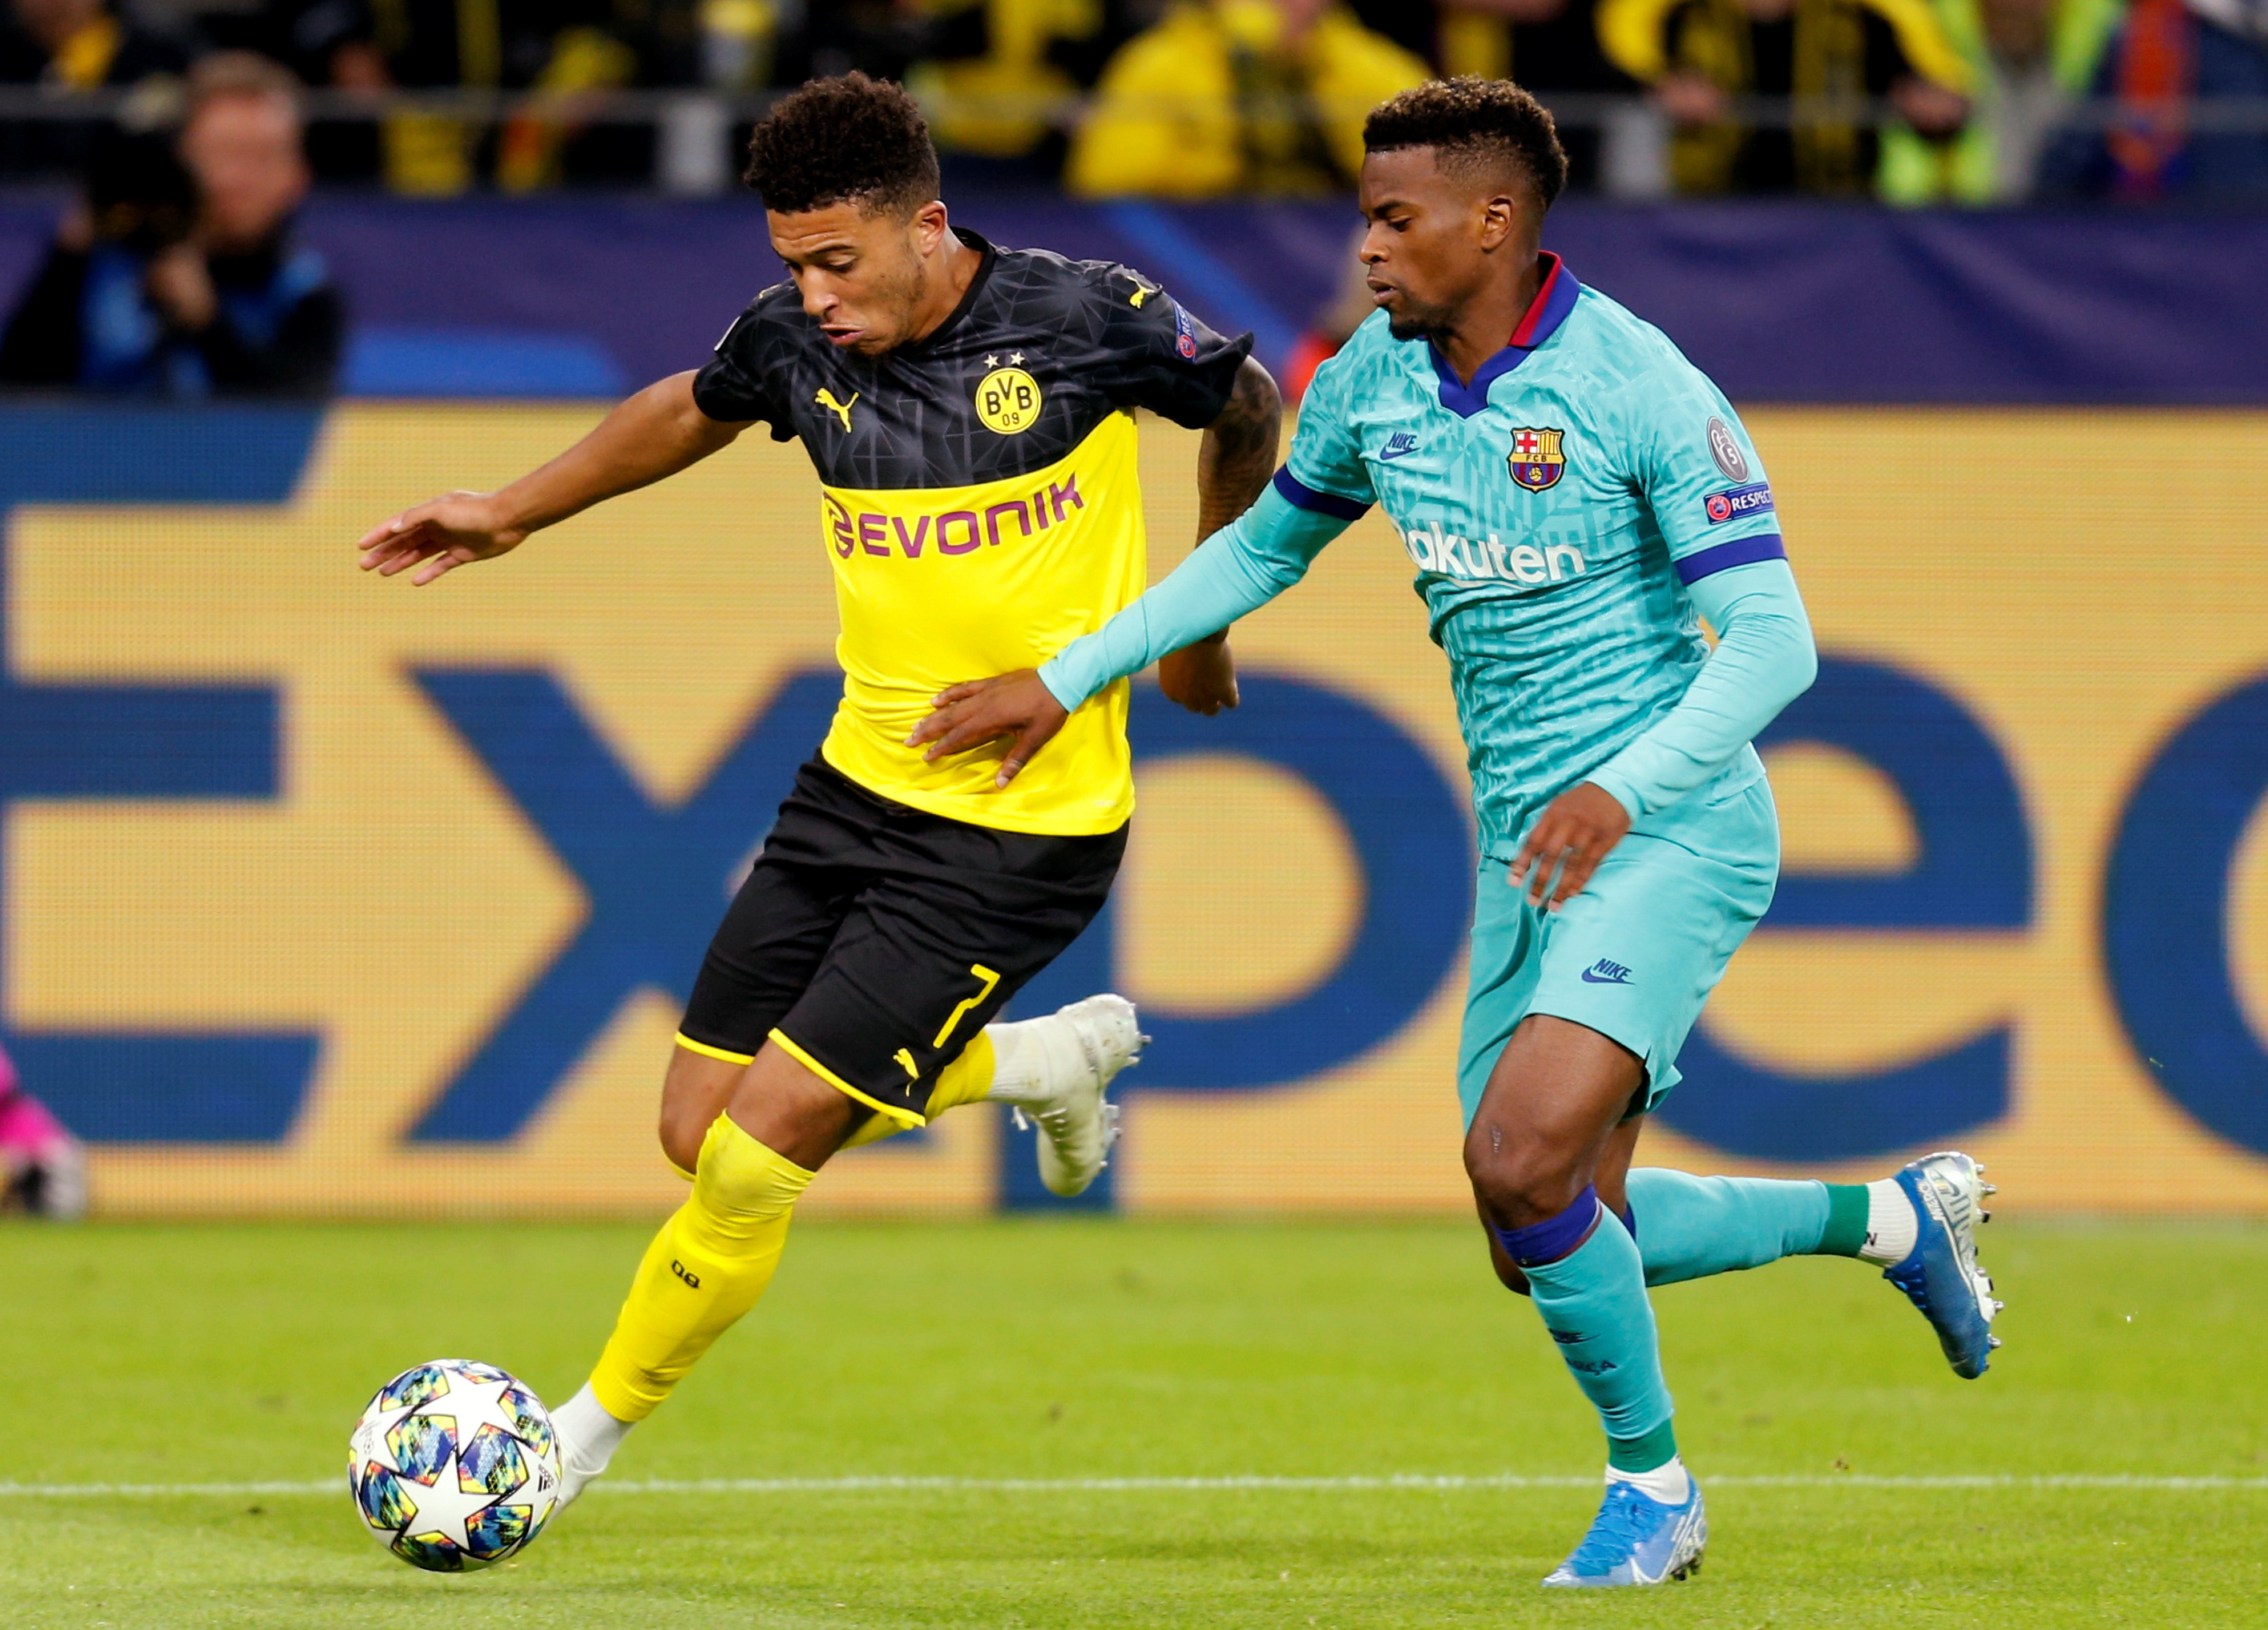 Is Sancho going to join United?